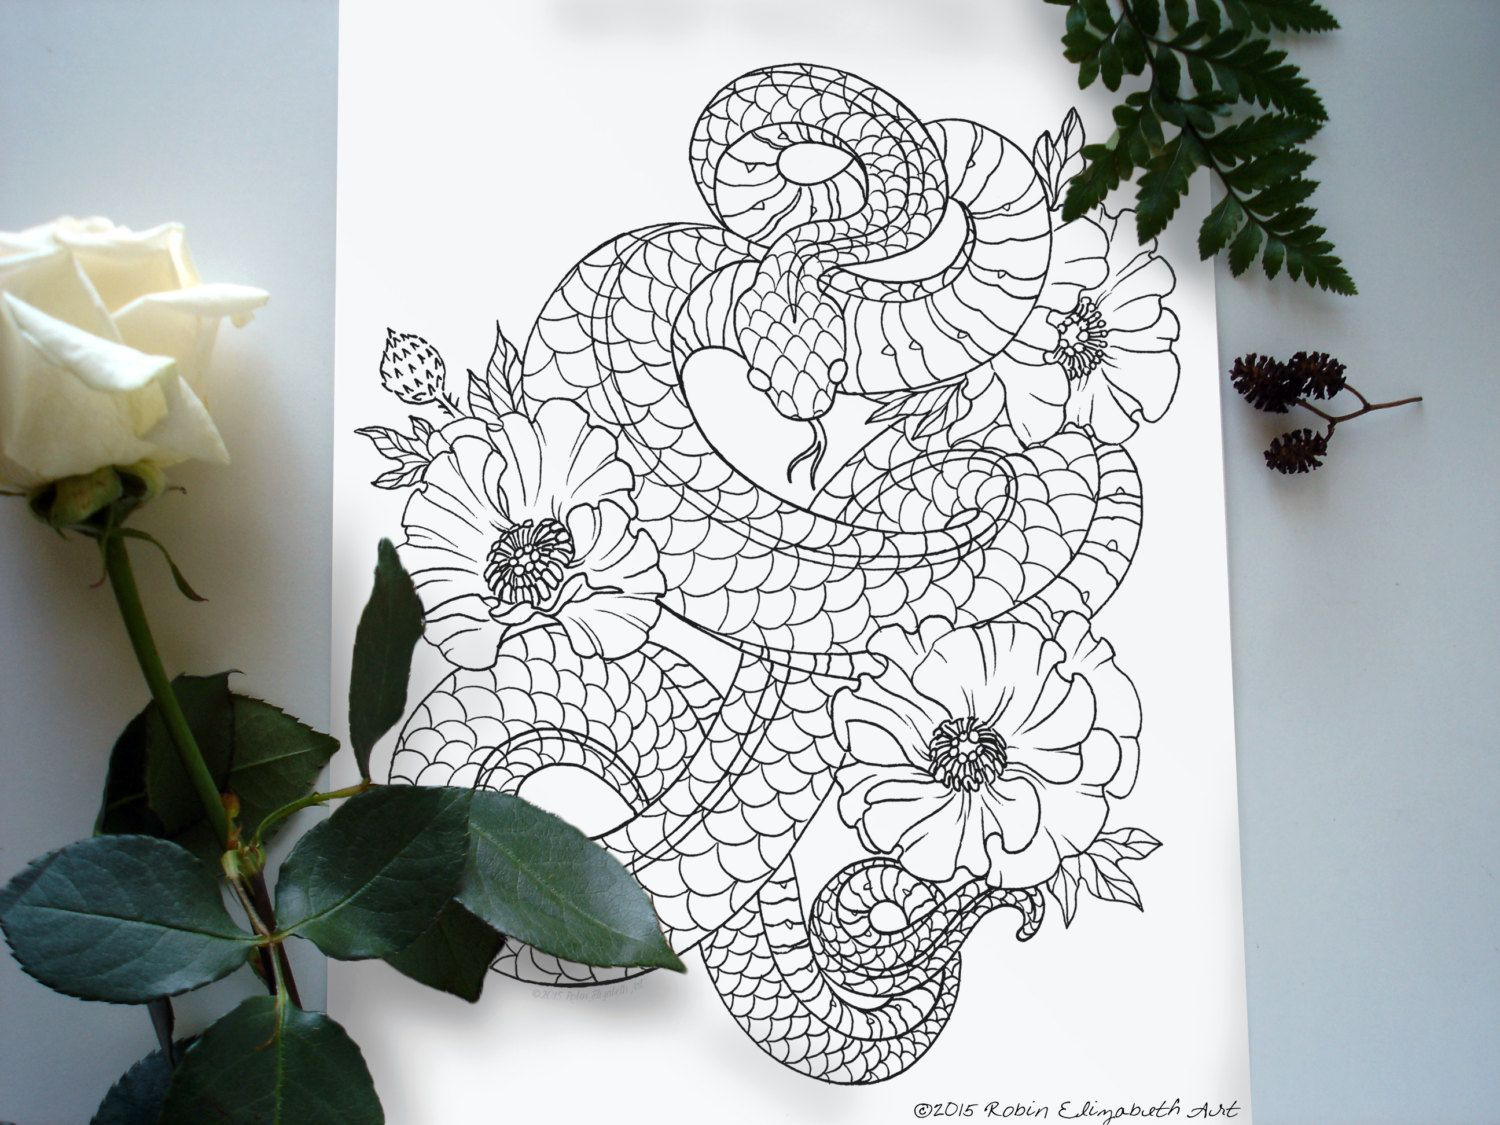 Dragon Coloring Pages For Adults Pdf : Adult coloring book floral tattoo digital download pdf adult